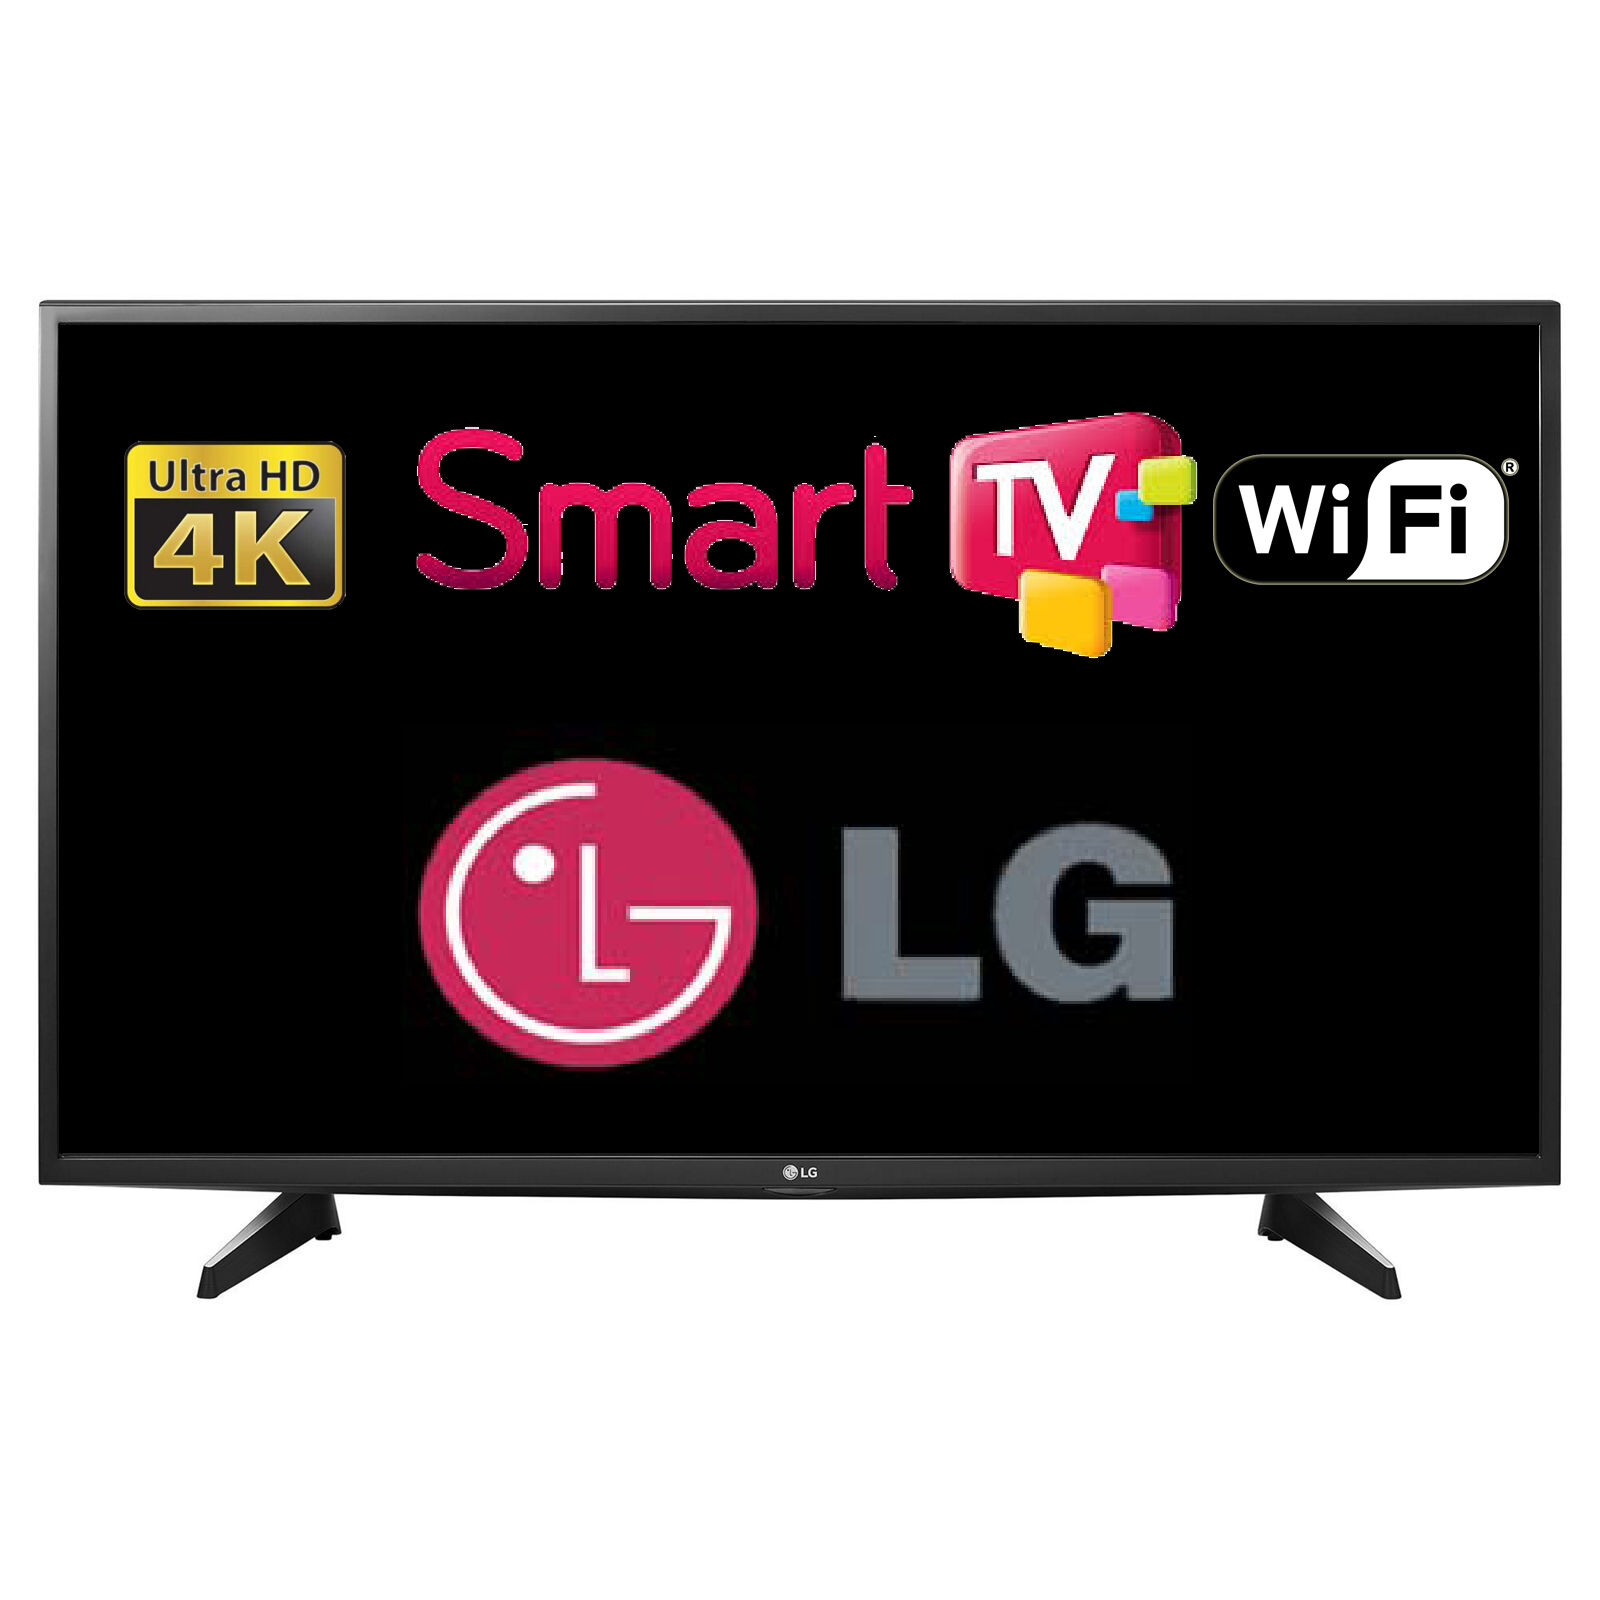 lg 43uh610v 43 smart led tv 4k ultra hd with freeview tuner wi fi webos hdmi. Black Bedroom Furniture Sets. Home Design Ideas